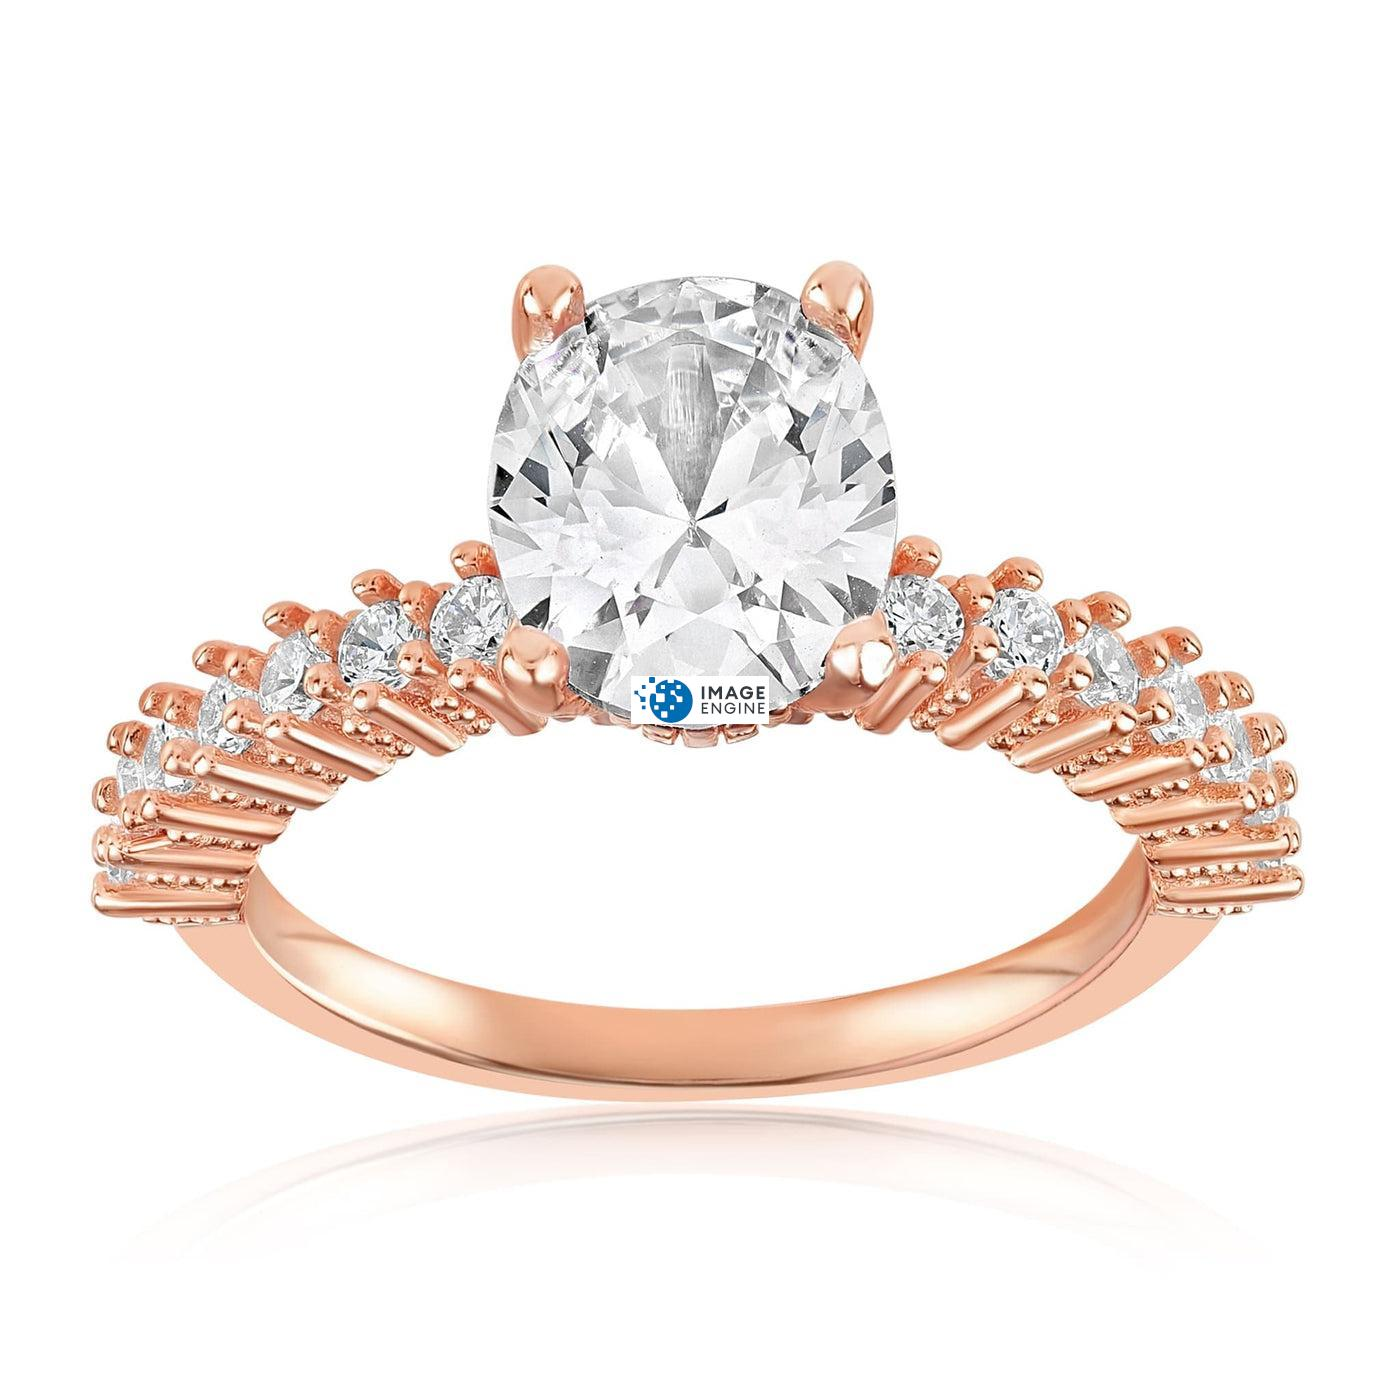 Cara Zirconia Ring - Front View Facing Up - 18K Rose Gold Vermeil